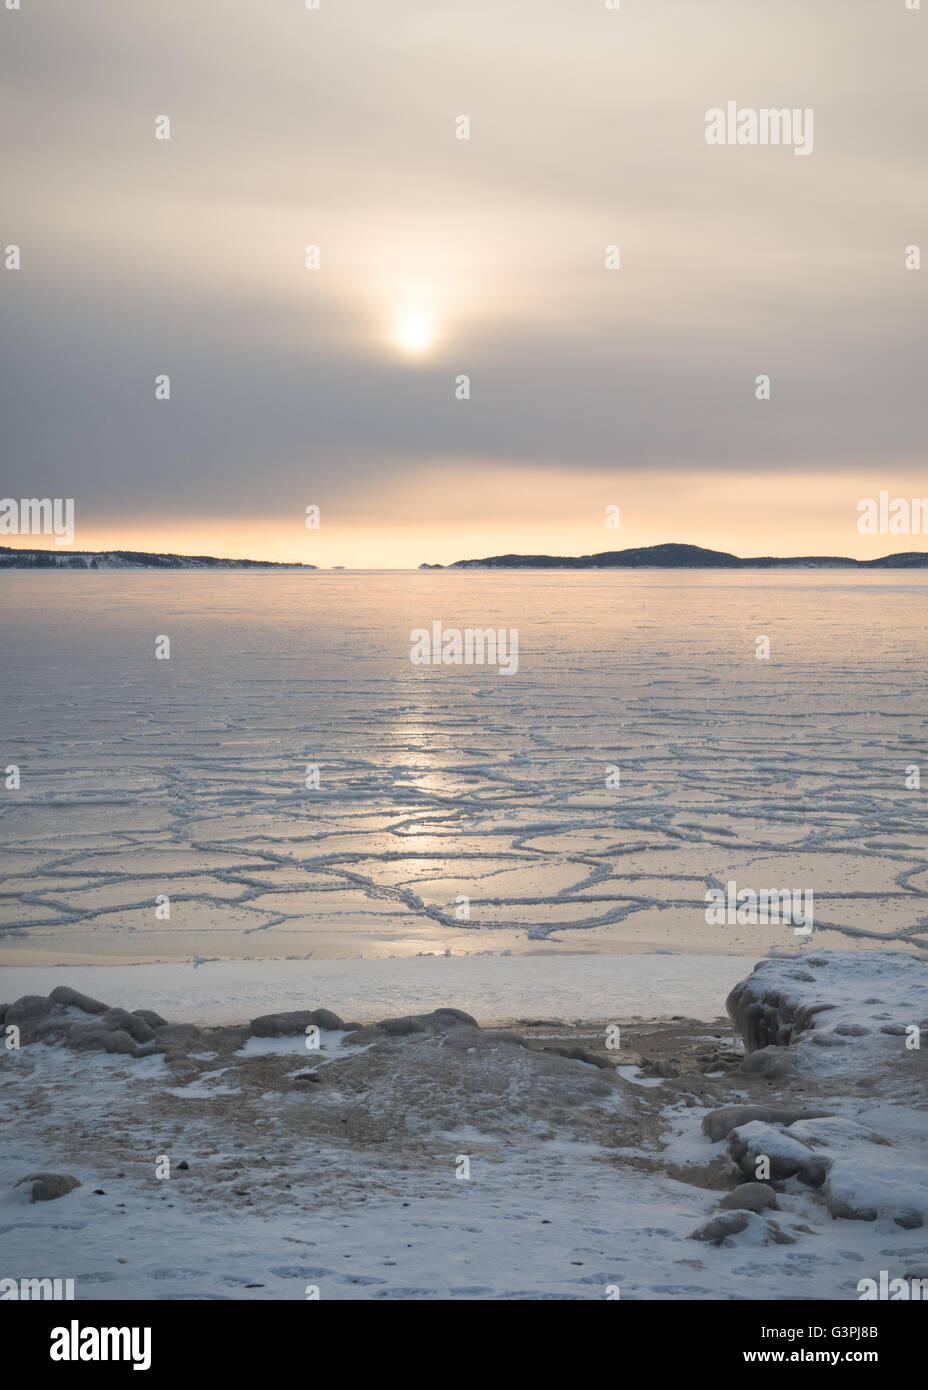 Low set sun reflecting in sea ice near the shore in the archipelago outside Örnsköldsvik in the northern - Stock Image